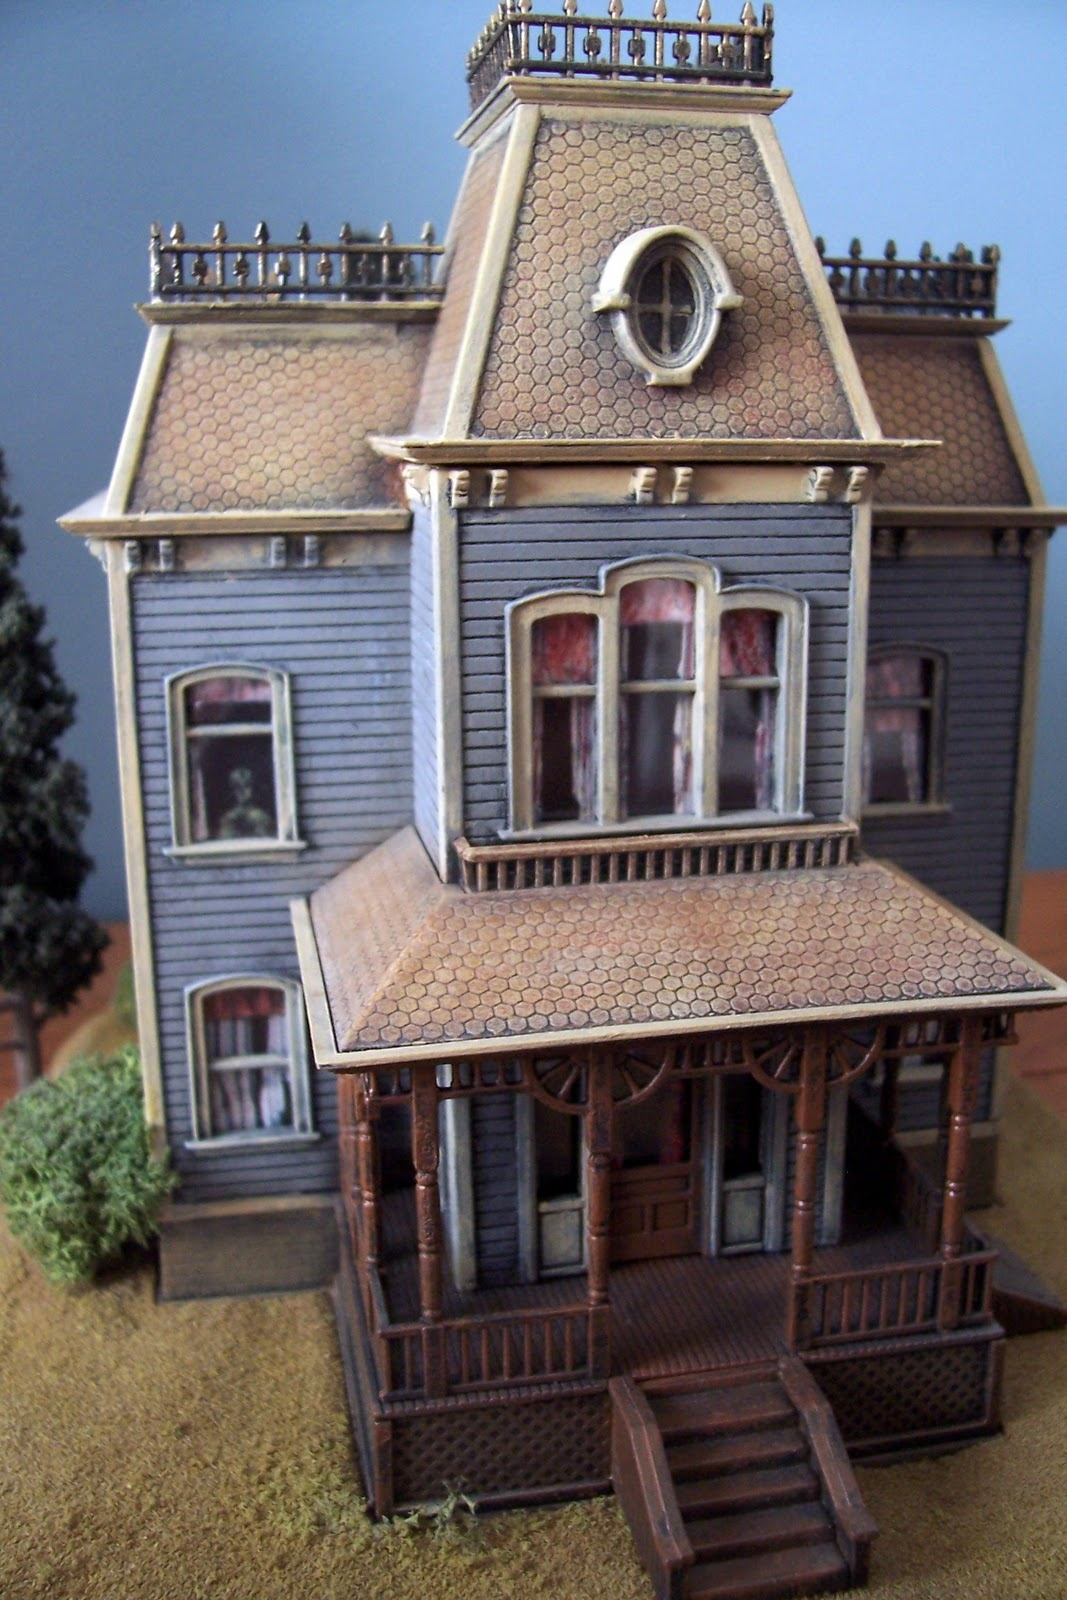 dioramas and clever things norman bates 39 home sweet home. Black Bedroom Furniture Sets. Home Design Ideas